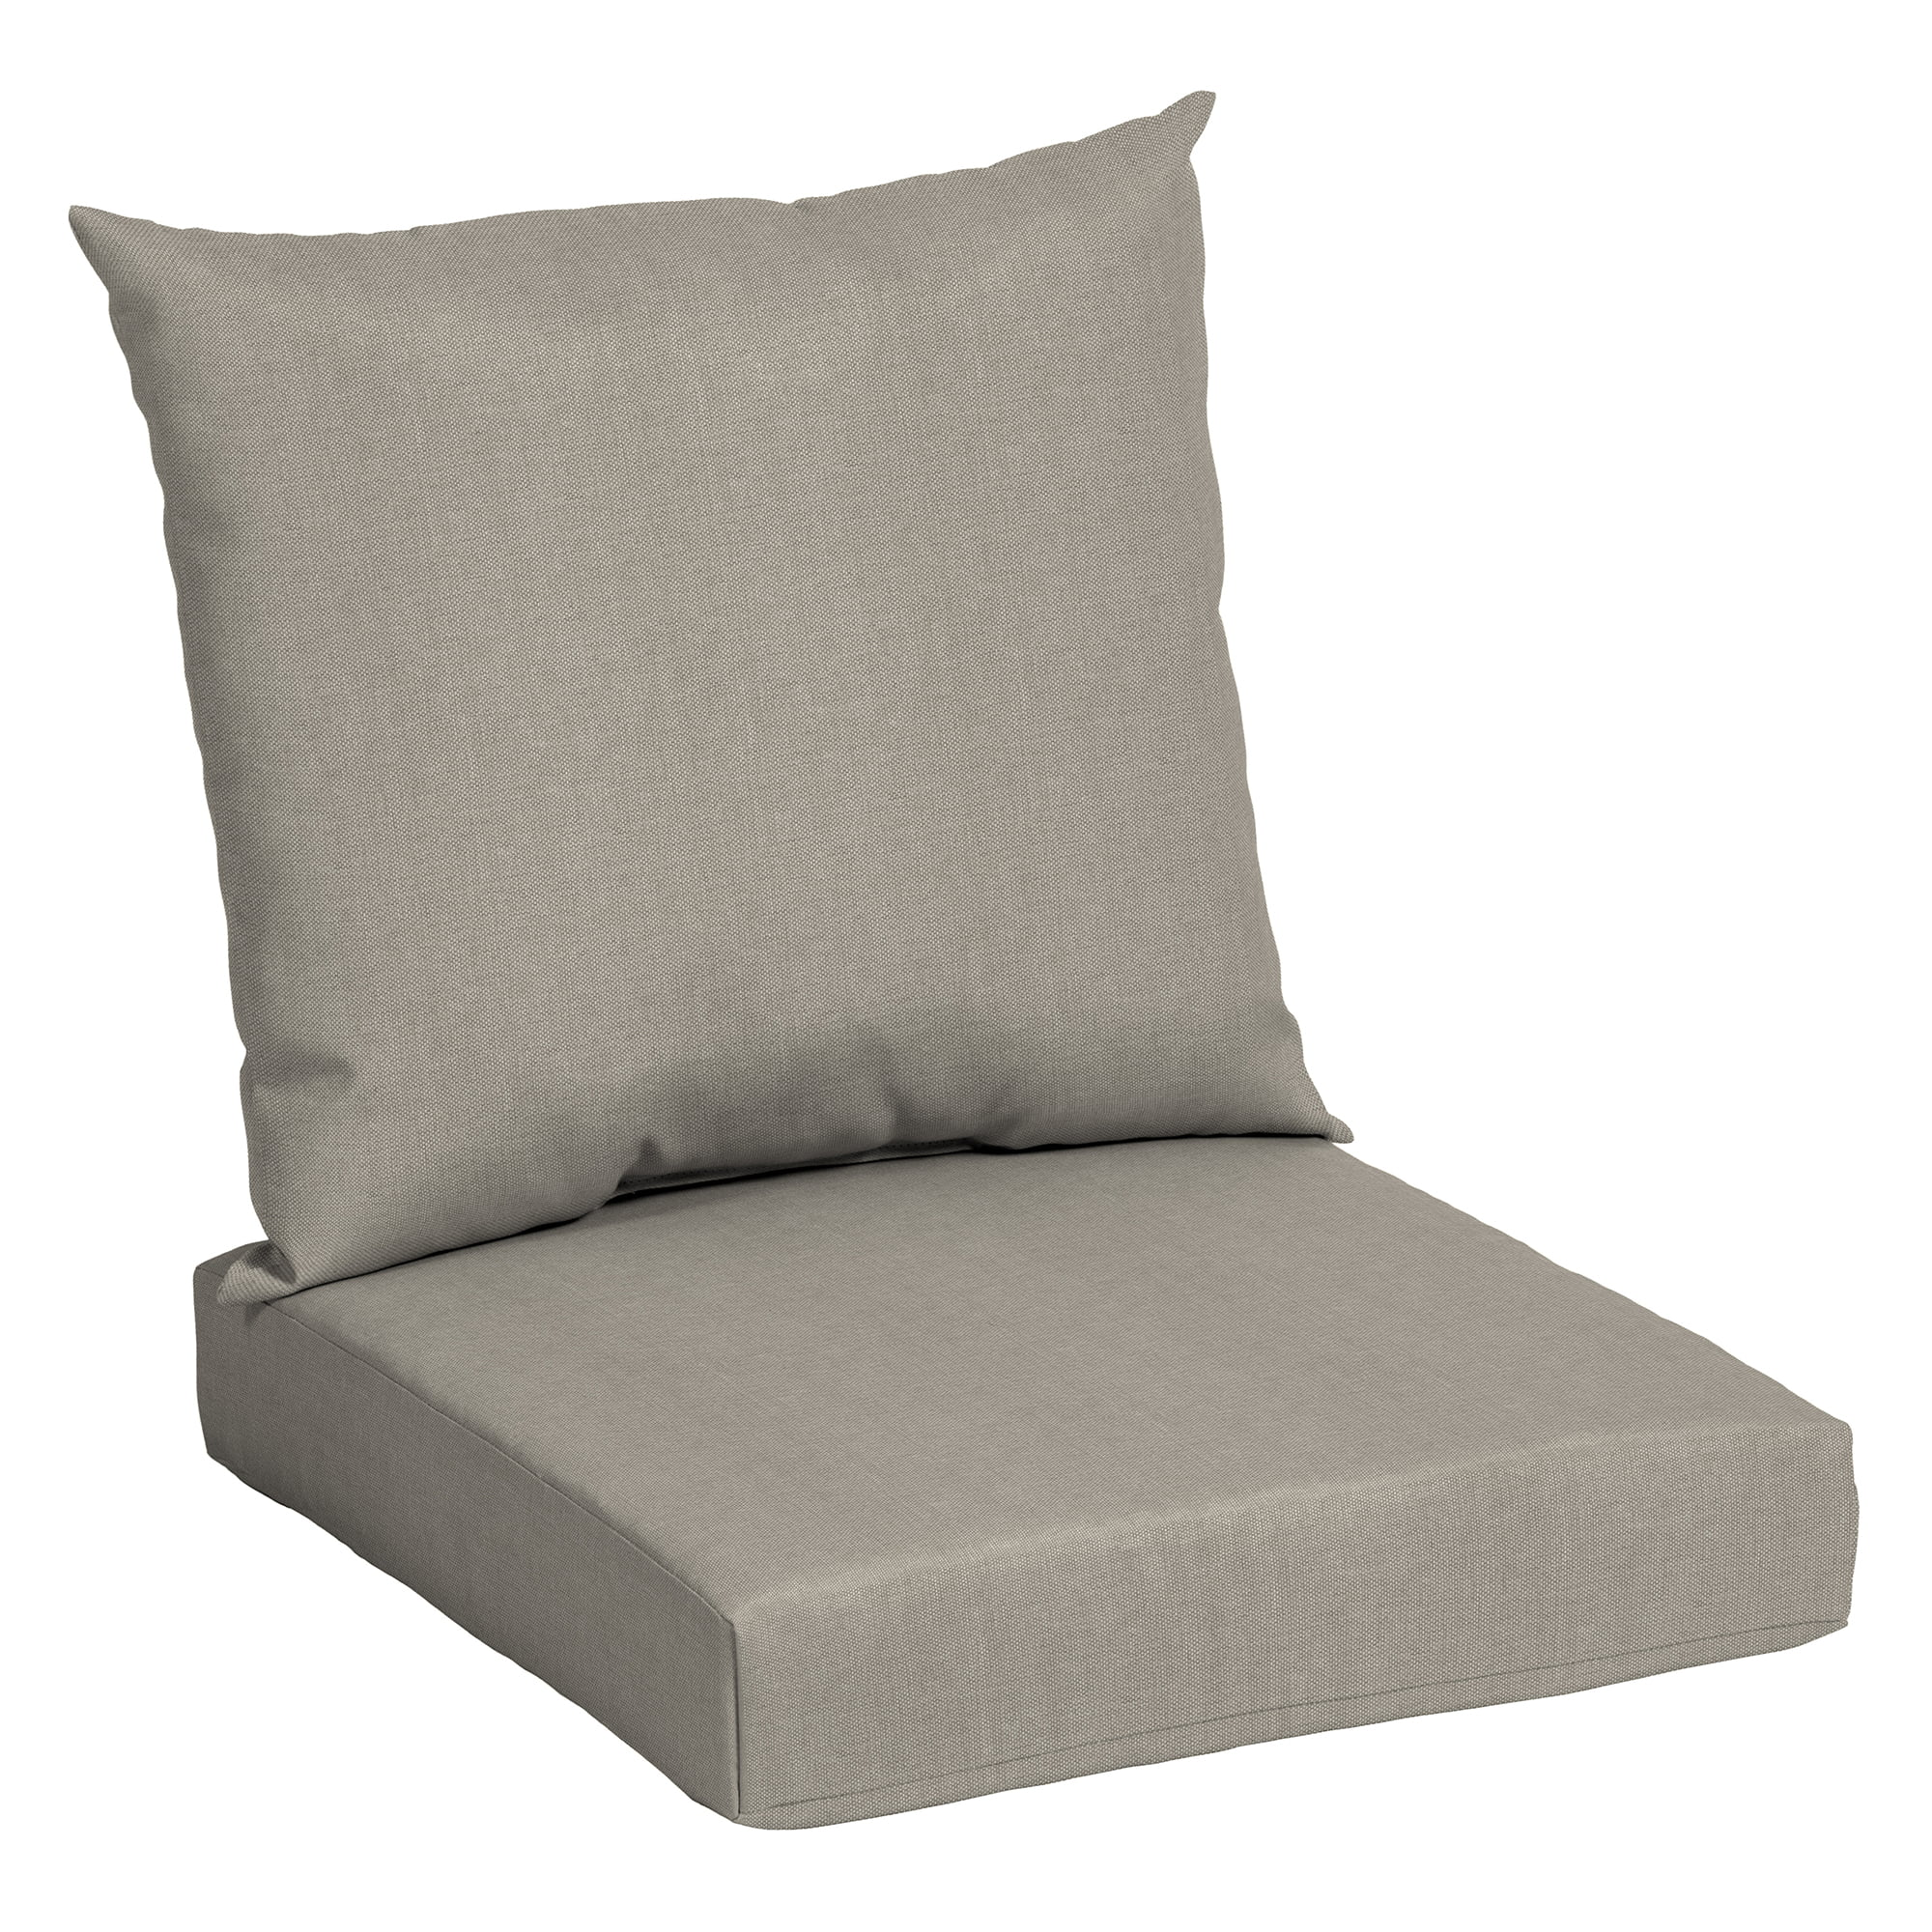 mainstays solid tan 45 x 22 75 in outdoor deep seat cushion set